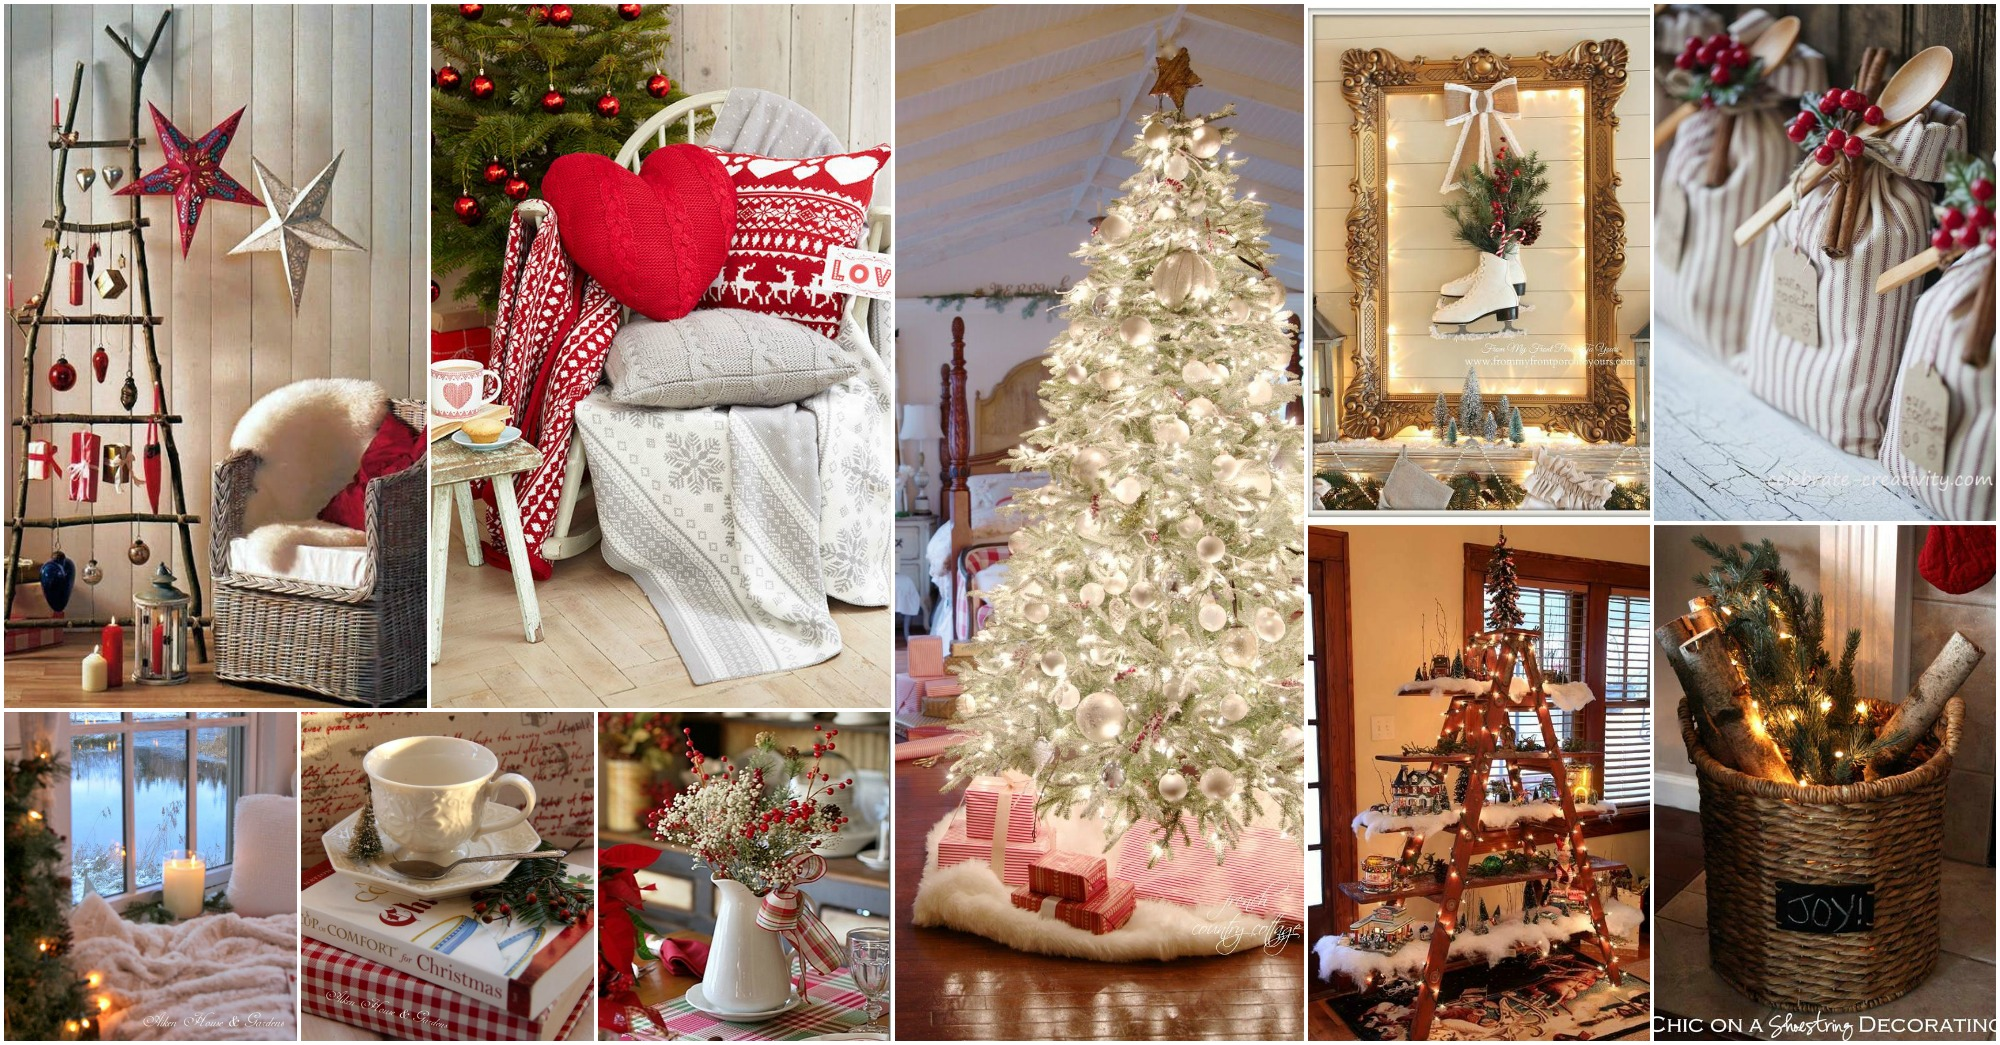 16  Adorable Cozy Cottage New Year Decoration Ideas That You Will     16  Adorable Cozy Cottage New Year Decoration Ideas That You Will Love To  Copy